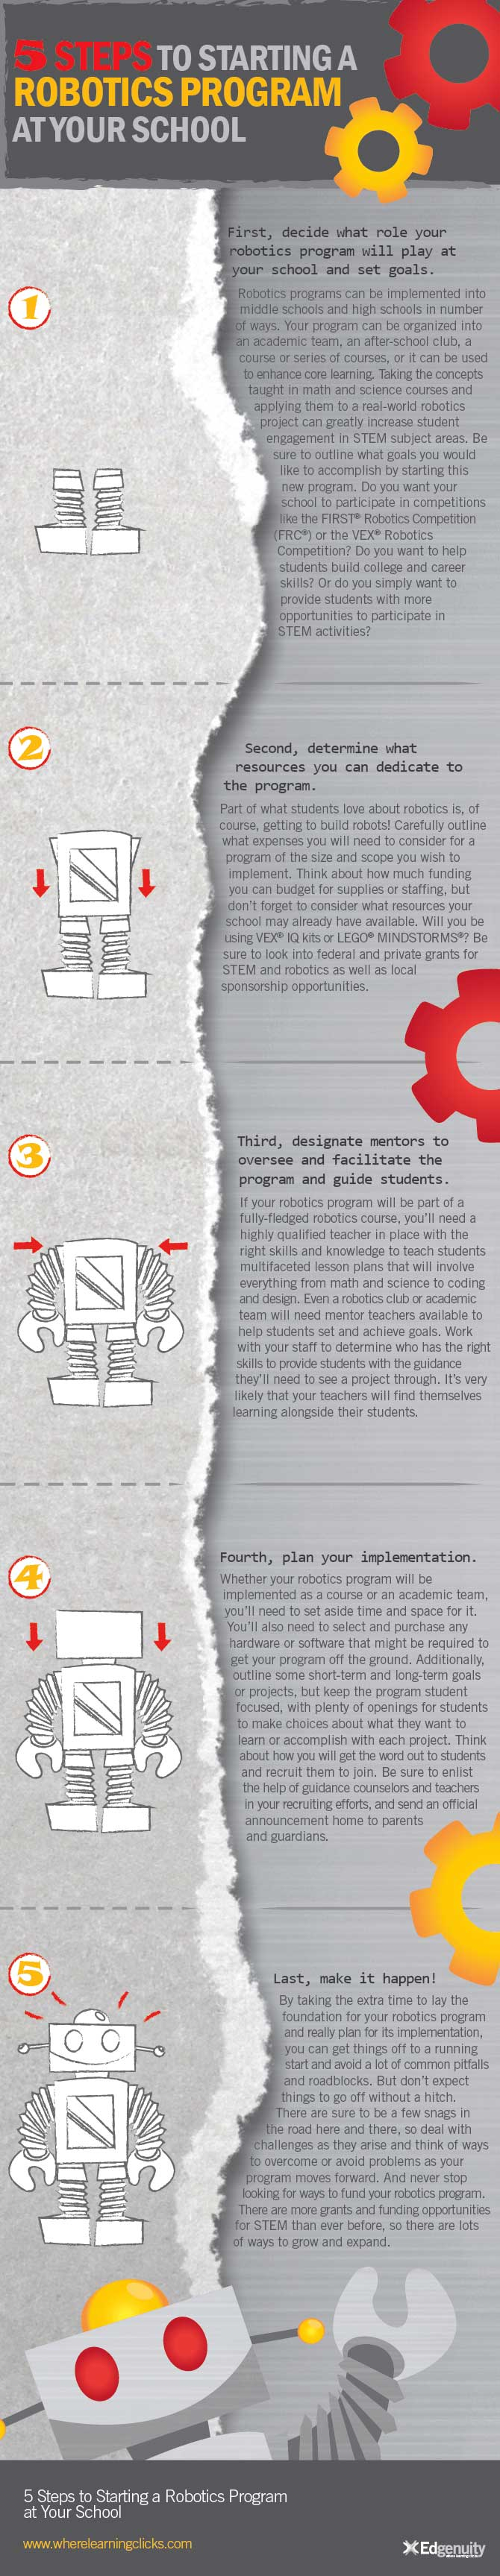 5 Steps To Starting a Robotics Program at Your School [Infographic]